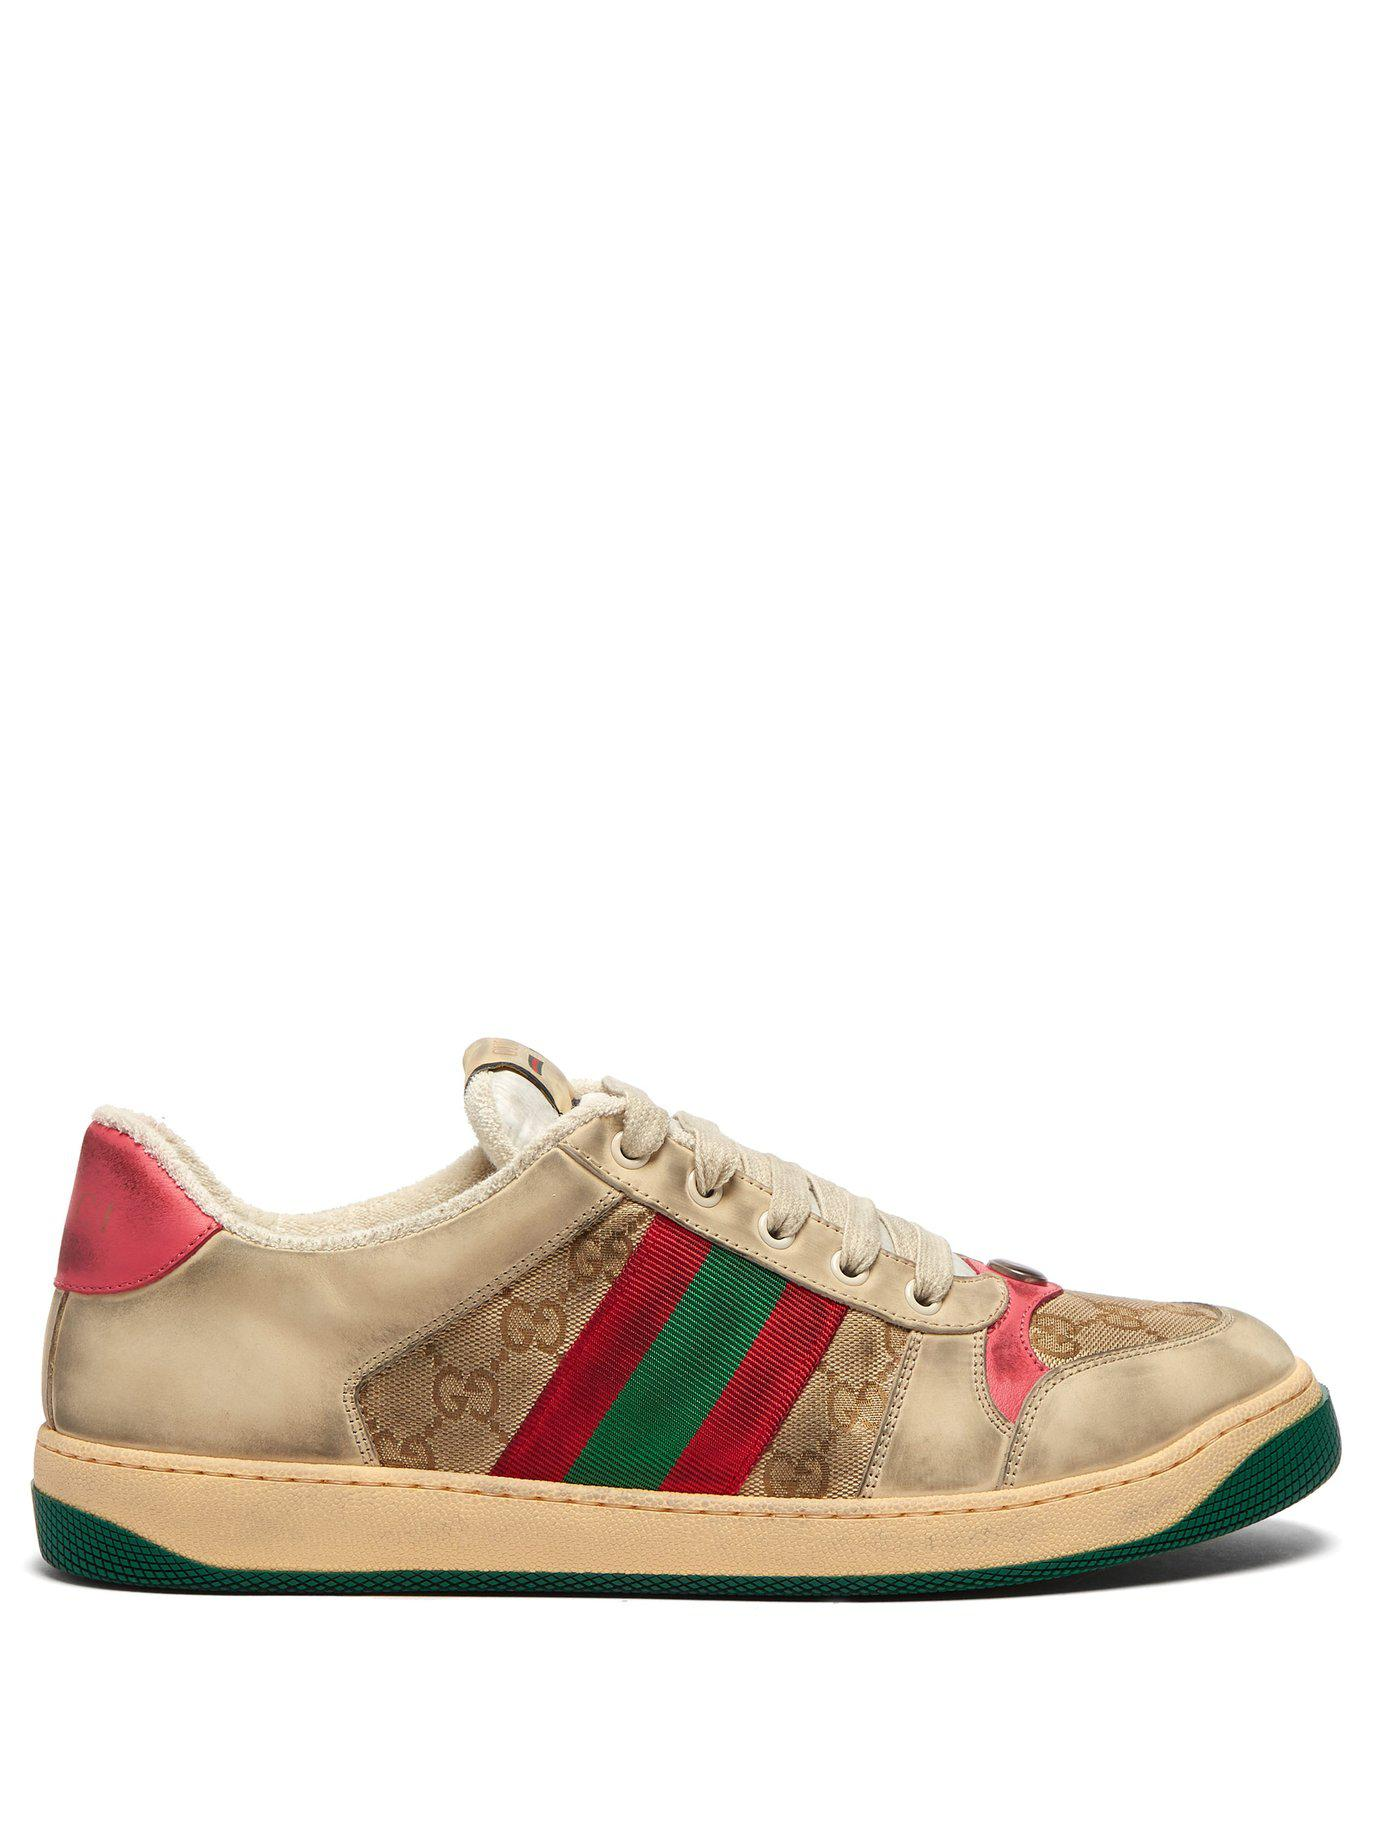 6f462f2c3ab Lyst - Gucci Screener Gg Supreme Leather Trainers for Men